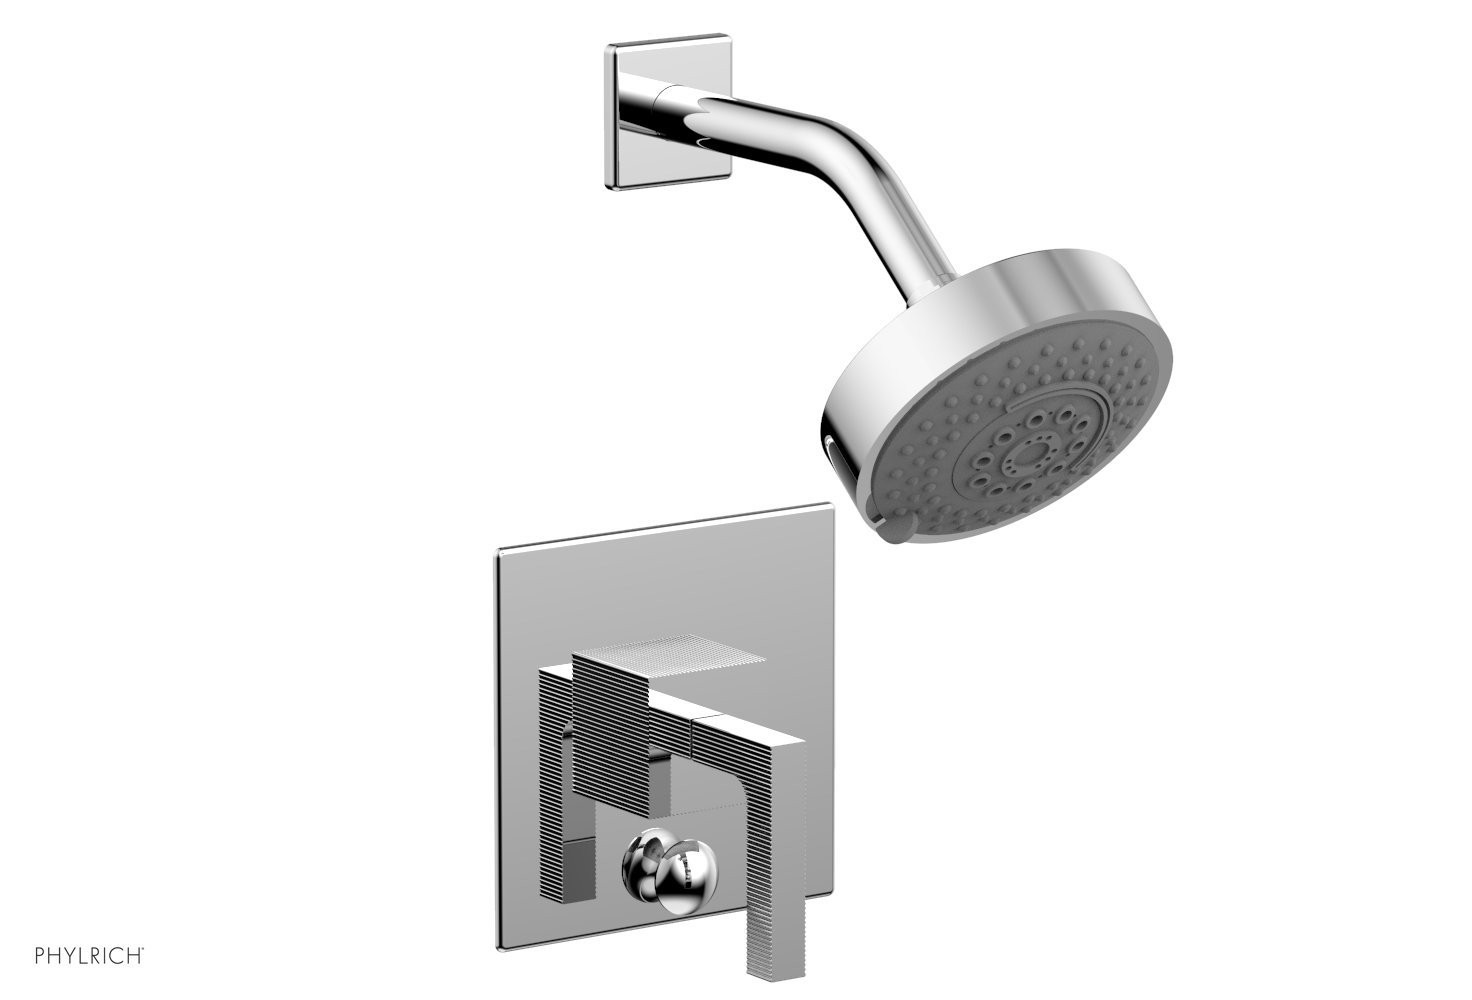 PHYLRICH 4-147 STRIA WALL MOUNT PRESSURE BALANCE SHOWER AND DIVERTER SET WITH LEVER HANDLE